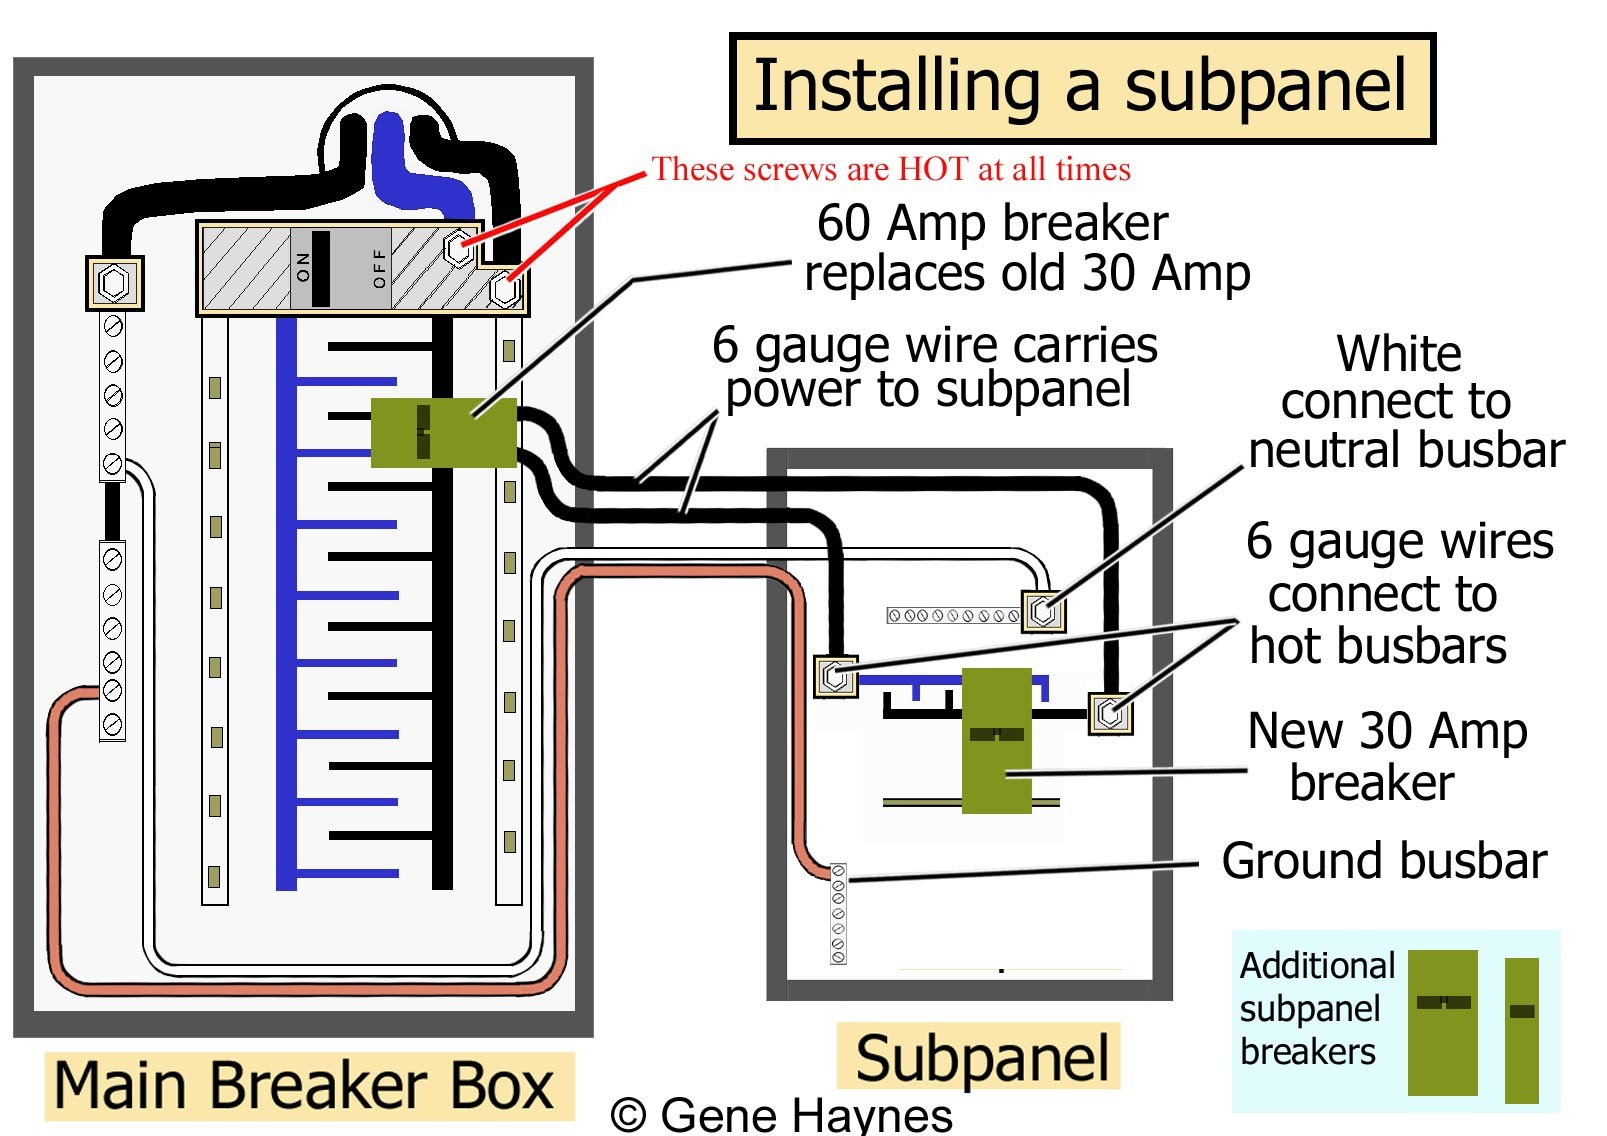 Off Main Sub Panel Wiring Diagram | Wiring Diagram - 60 Amp Sub Panel Wiring Diagram